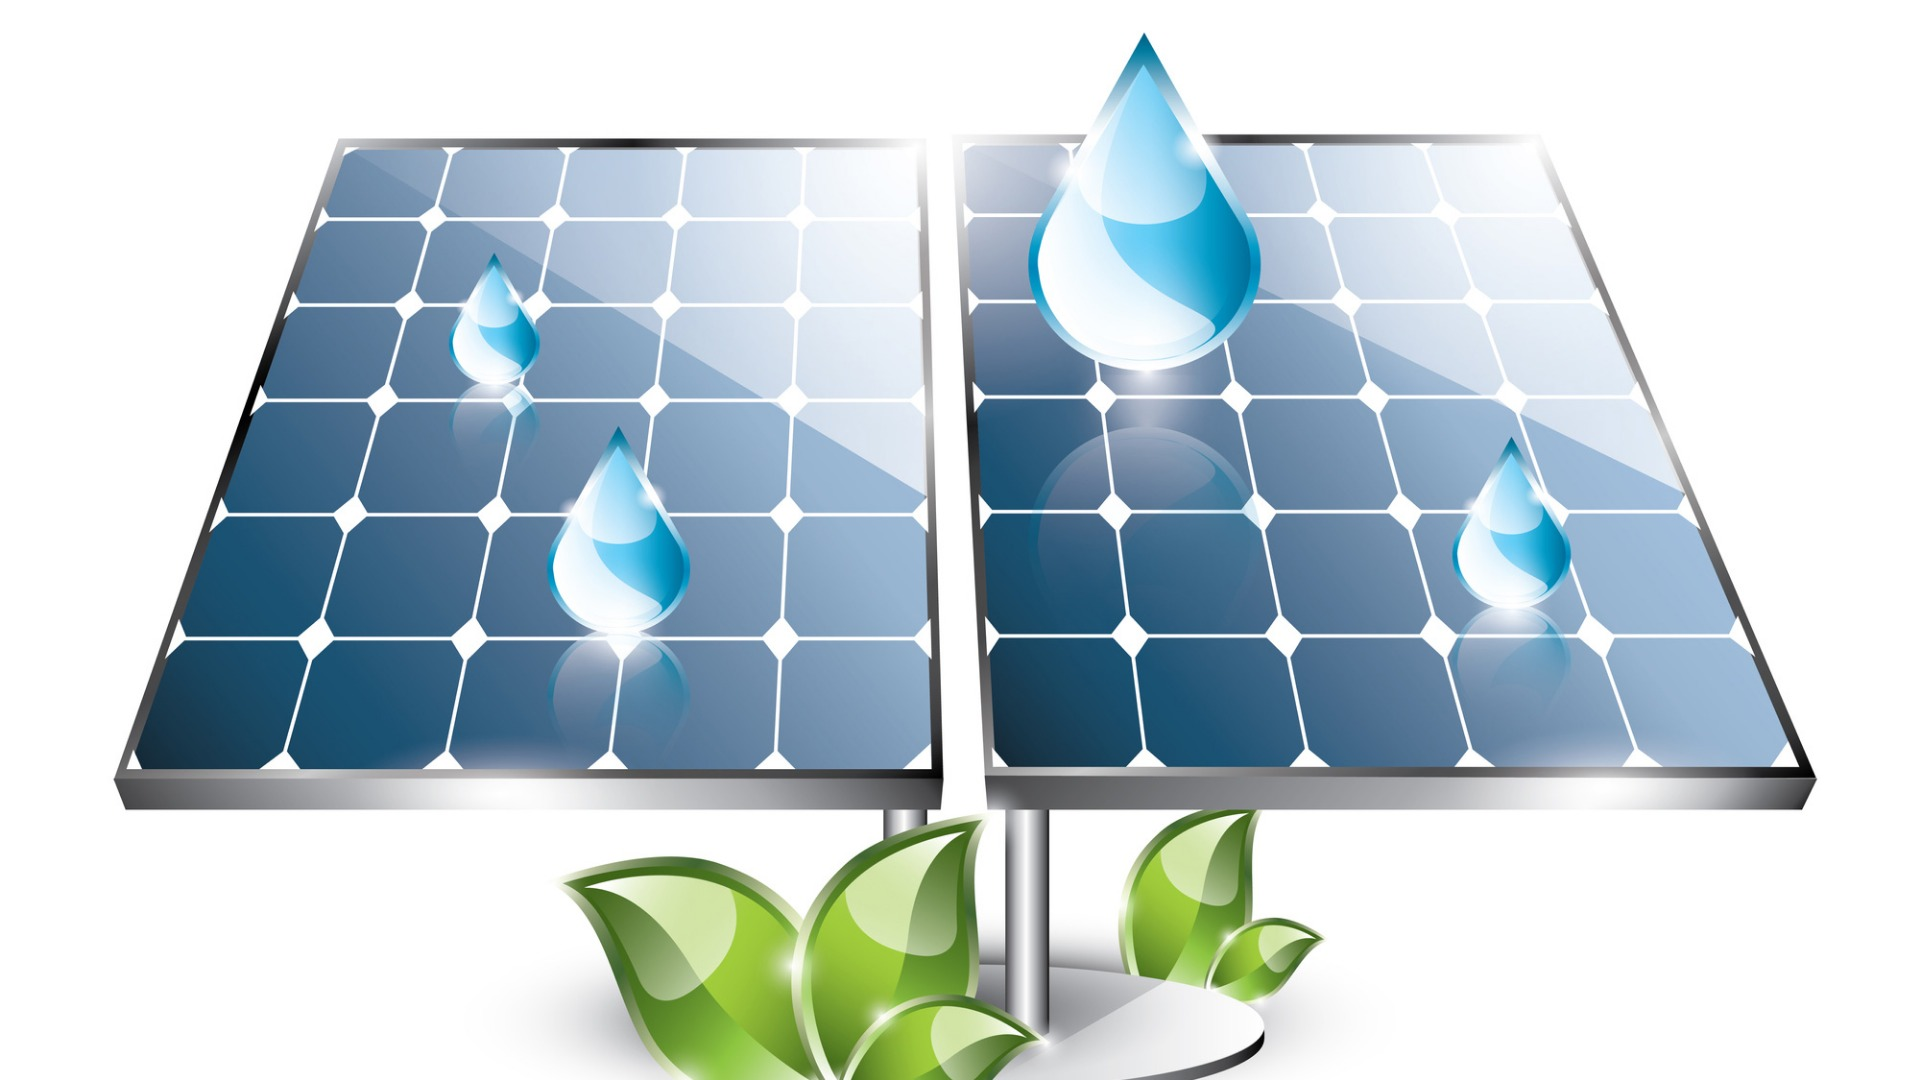 Hybrid solar cell captures energy from the sun and raindrops